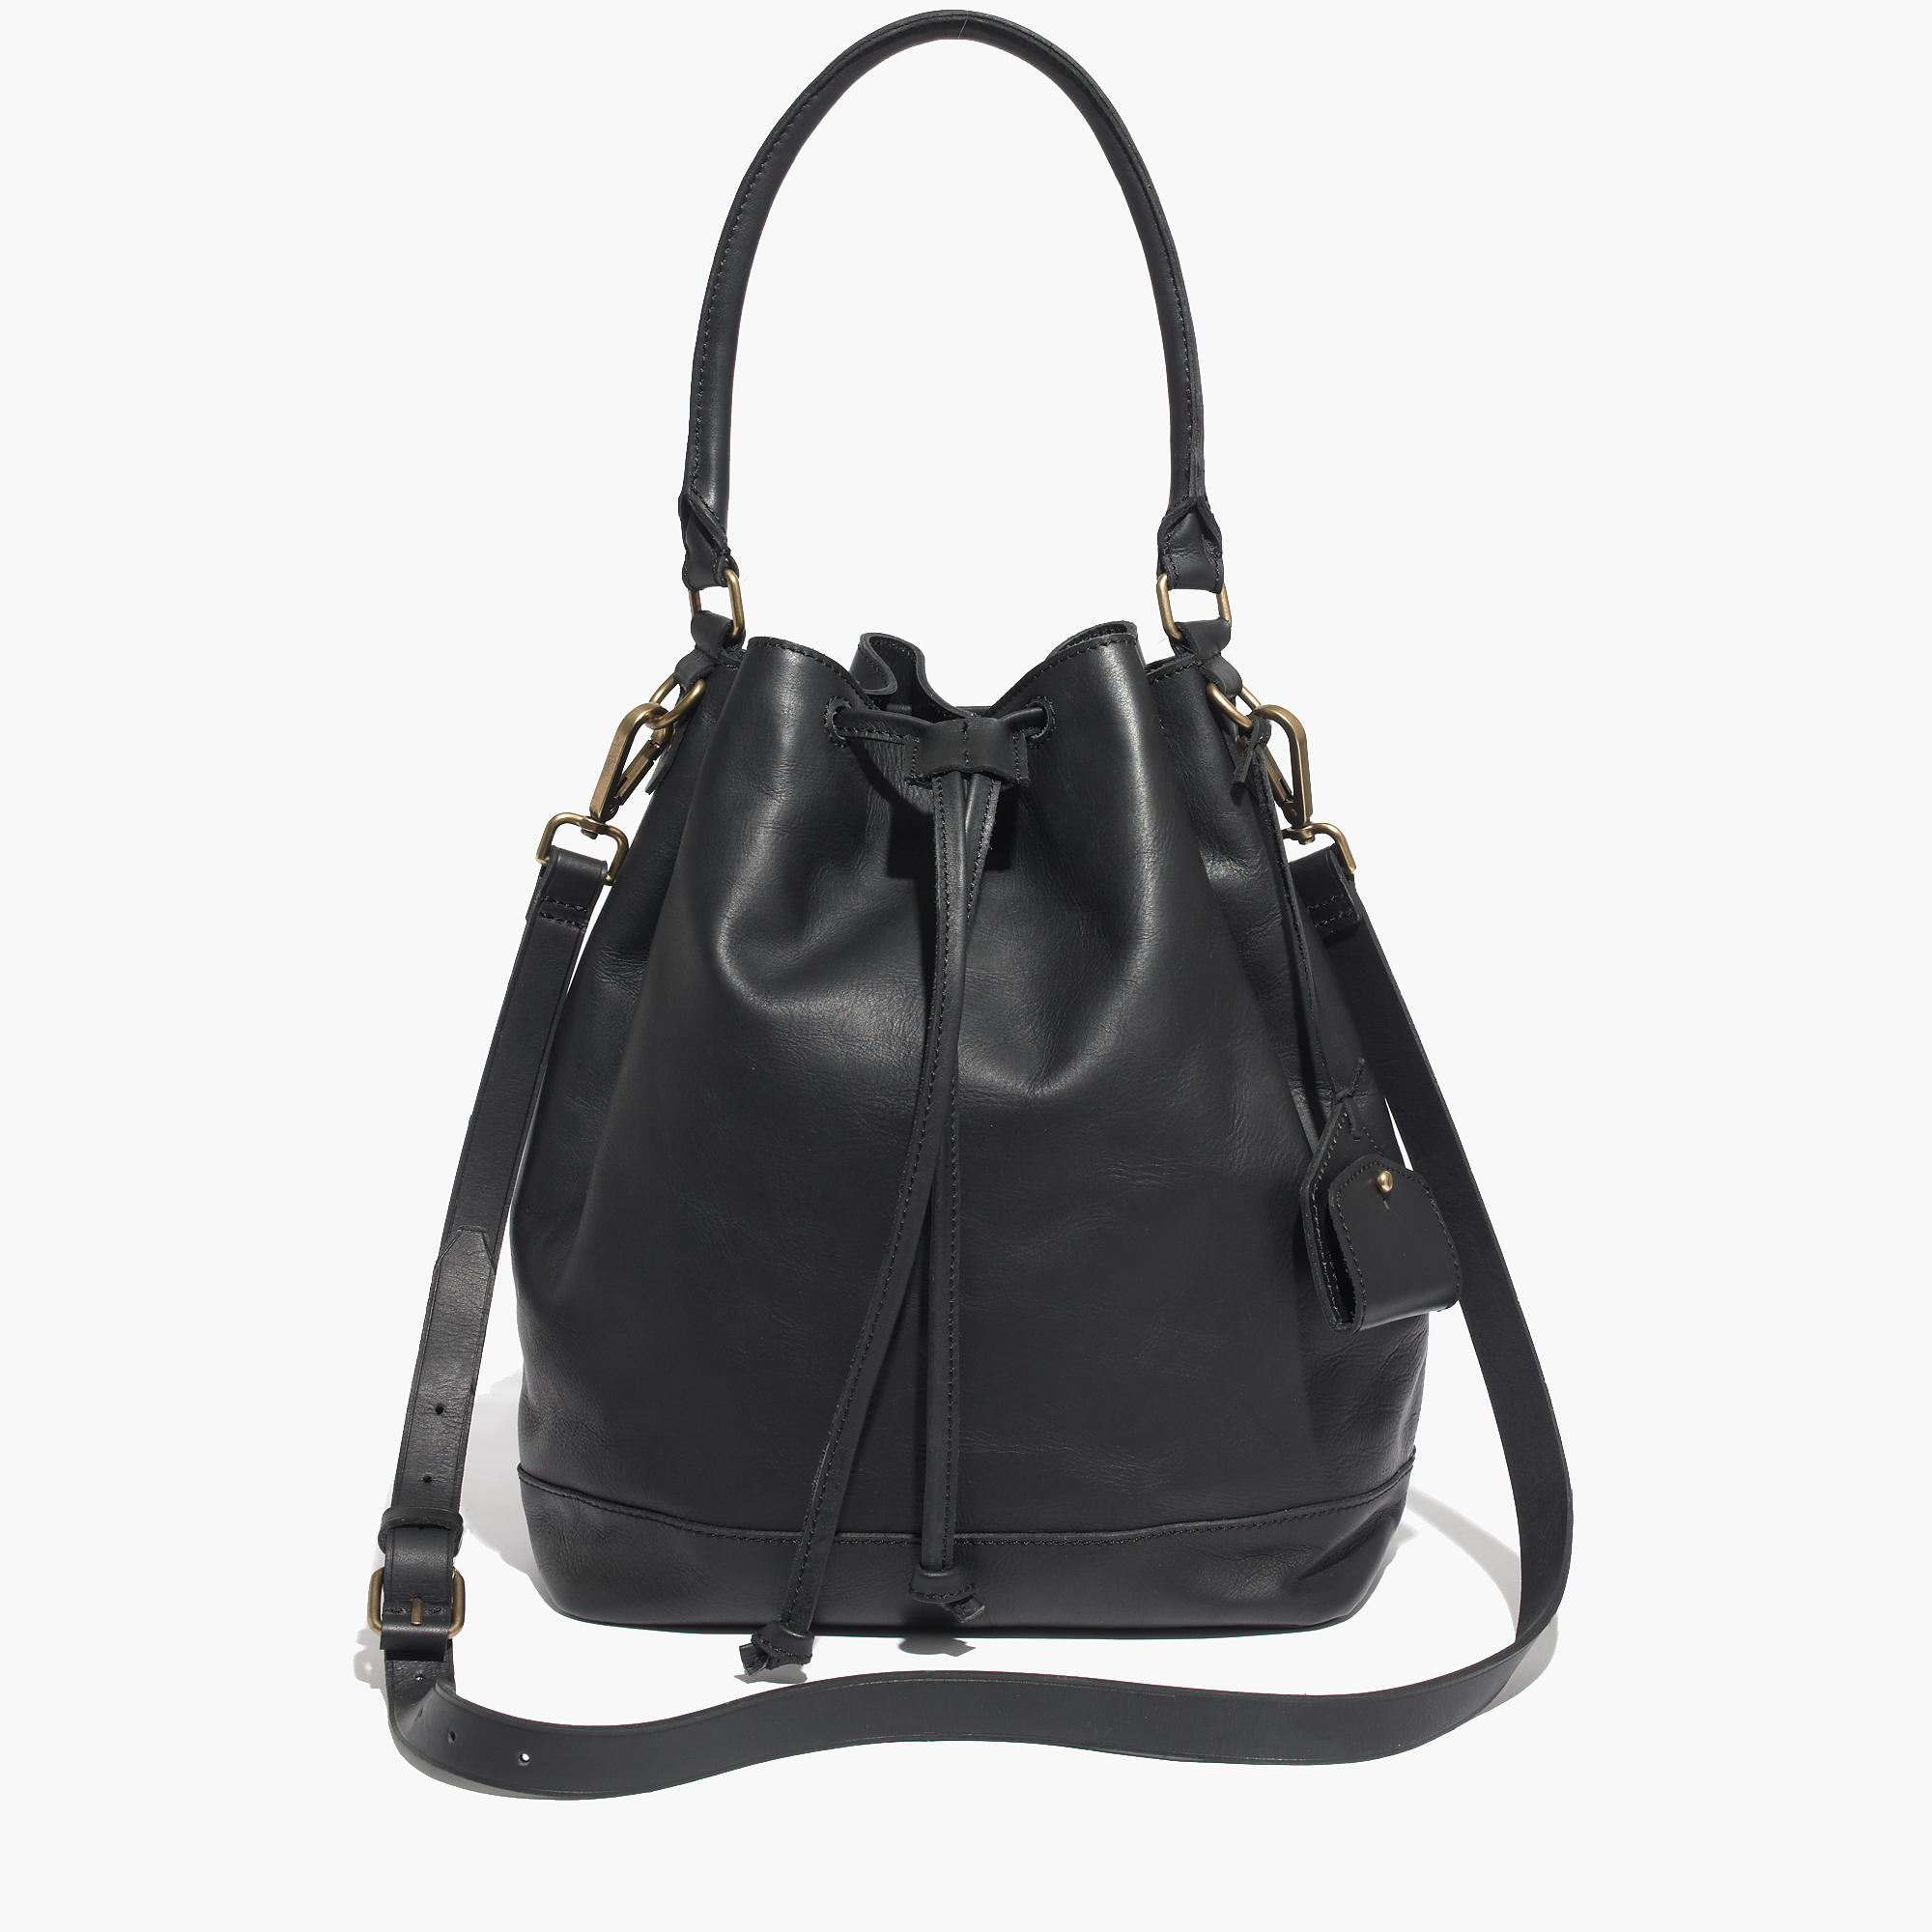 Large bucket bag in imitation leather with a handle, detachable shoulder strap and zip at the top. Unlined. Size approx. 15xx cm.